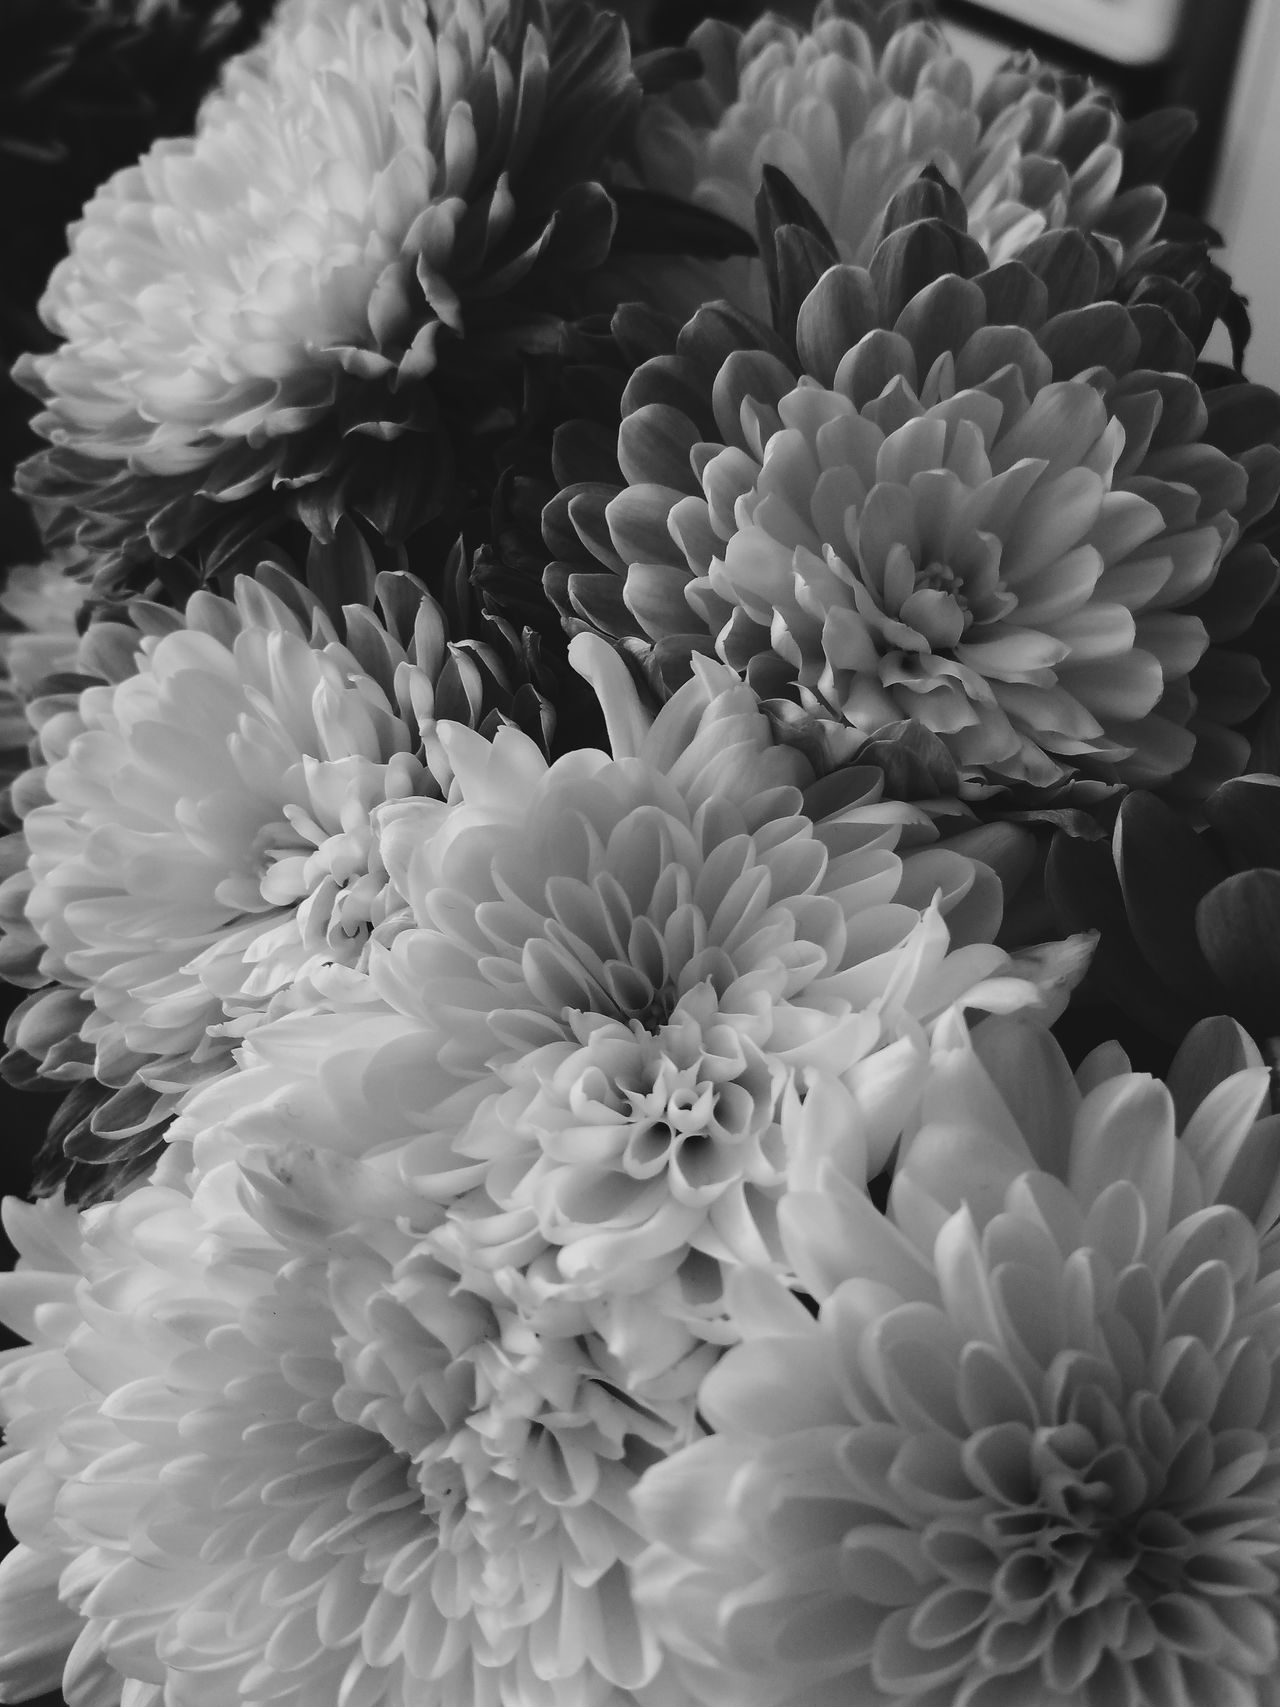 ⚫⚪ Flower Petal Nature Photography Monochrome Photography Blackandwhite Black And White Black & White